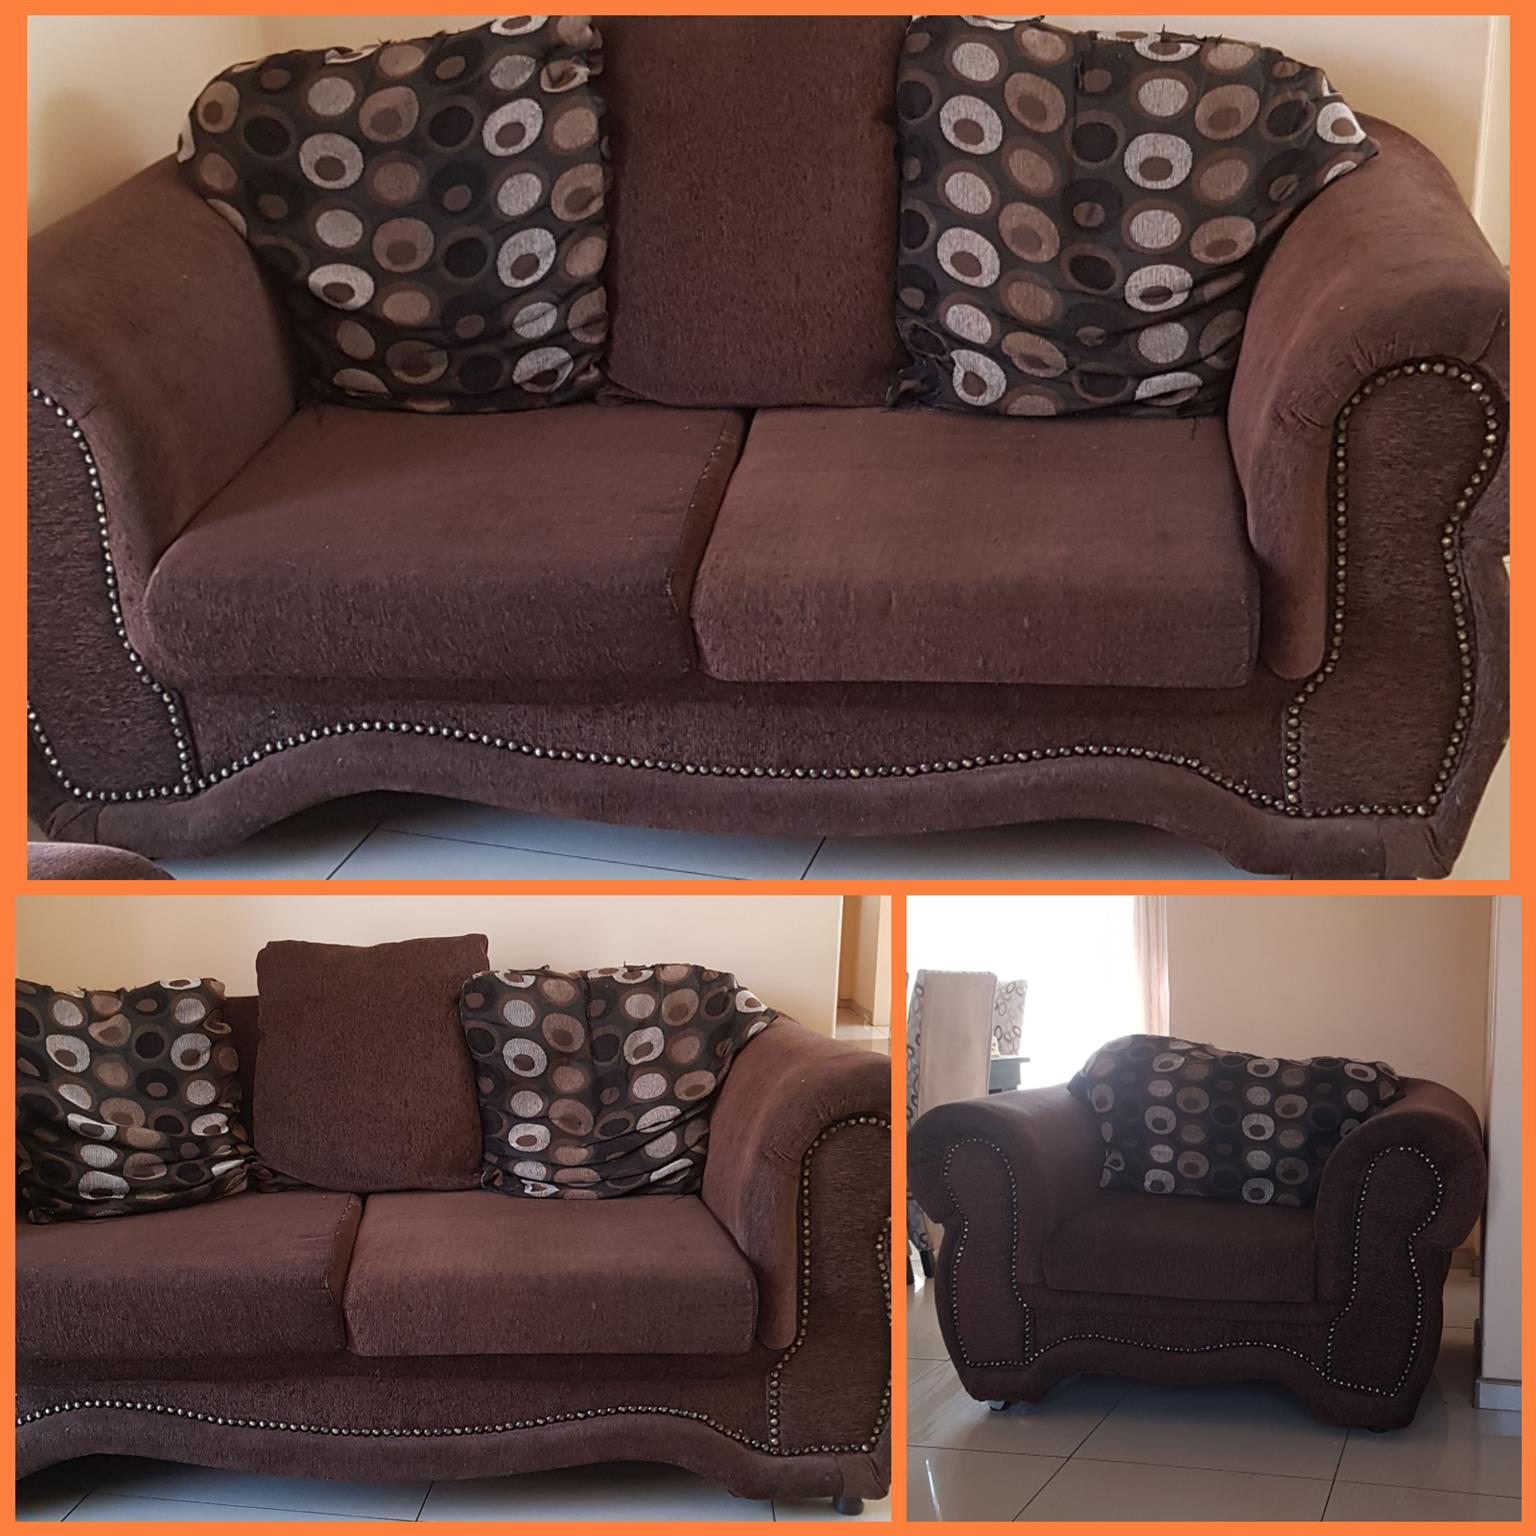 Big couches for sale